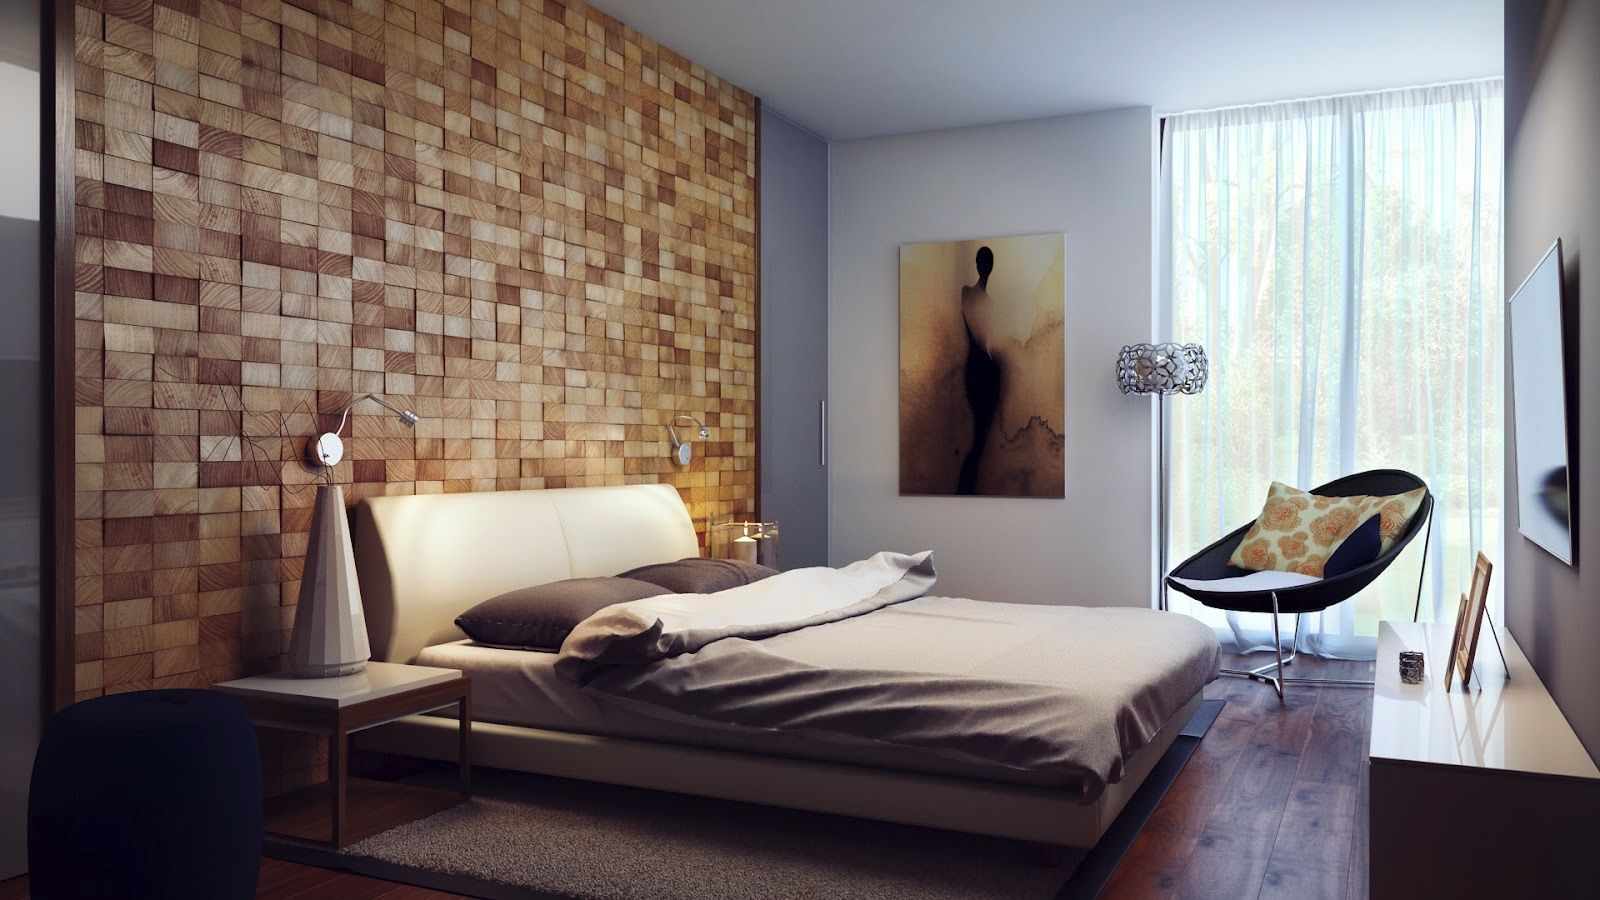 Bedroom wall ideas modern - 20 Bedrooms With Wooden Panel Walls Modern Headboardheadboard Ideasbedroom